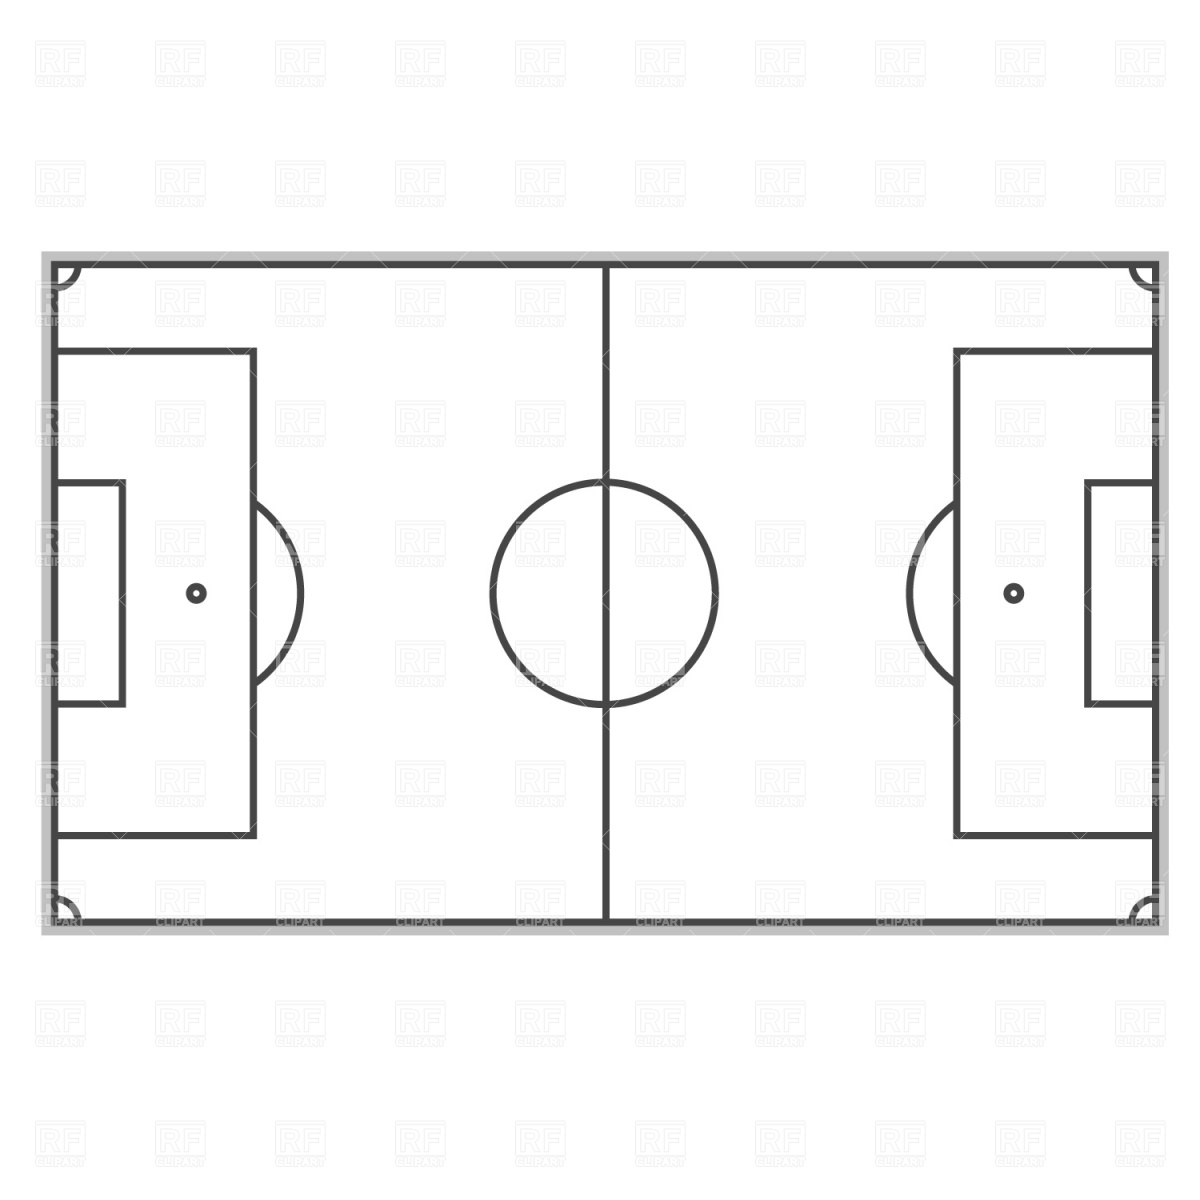 Free Soccer Field Layout Download Free Clip Art Free